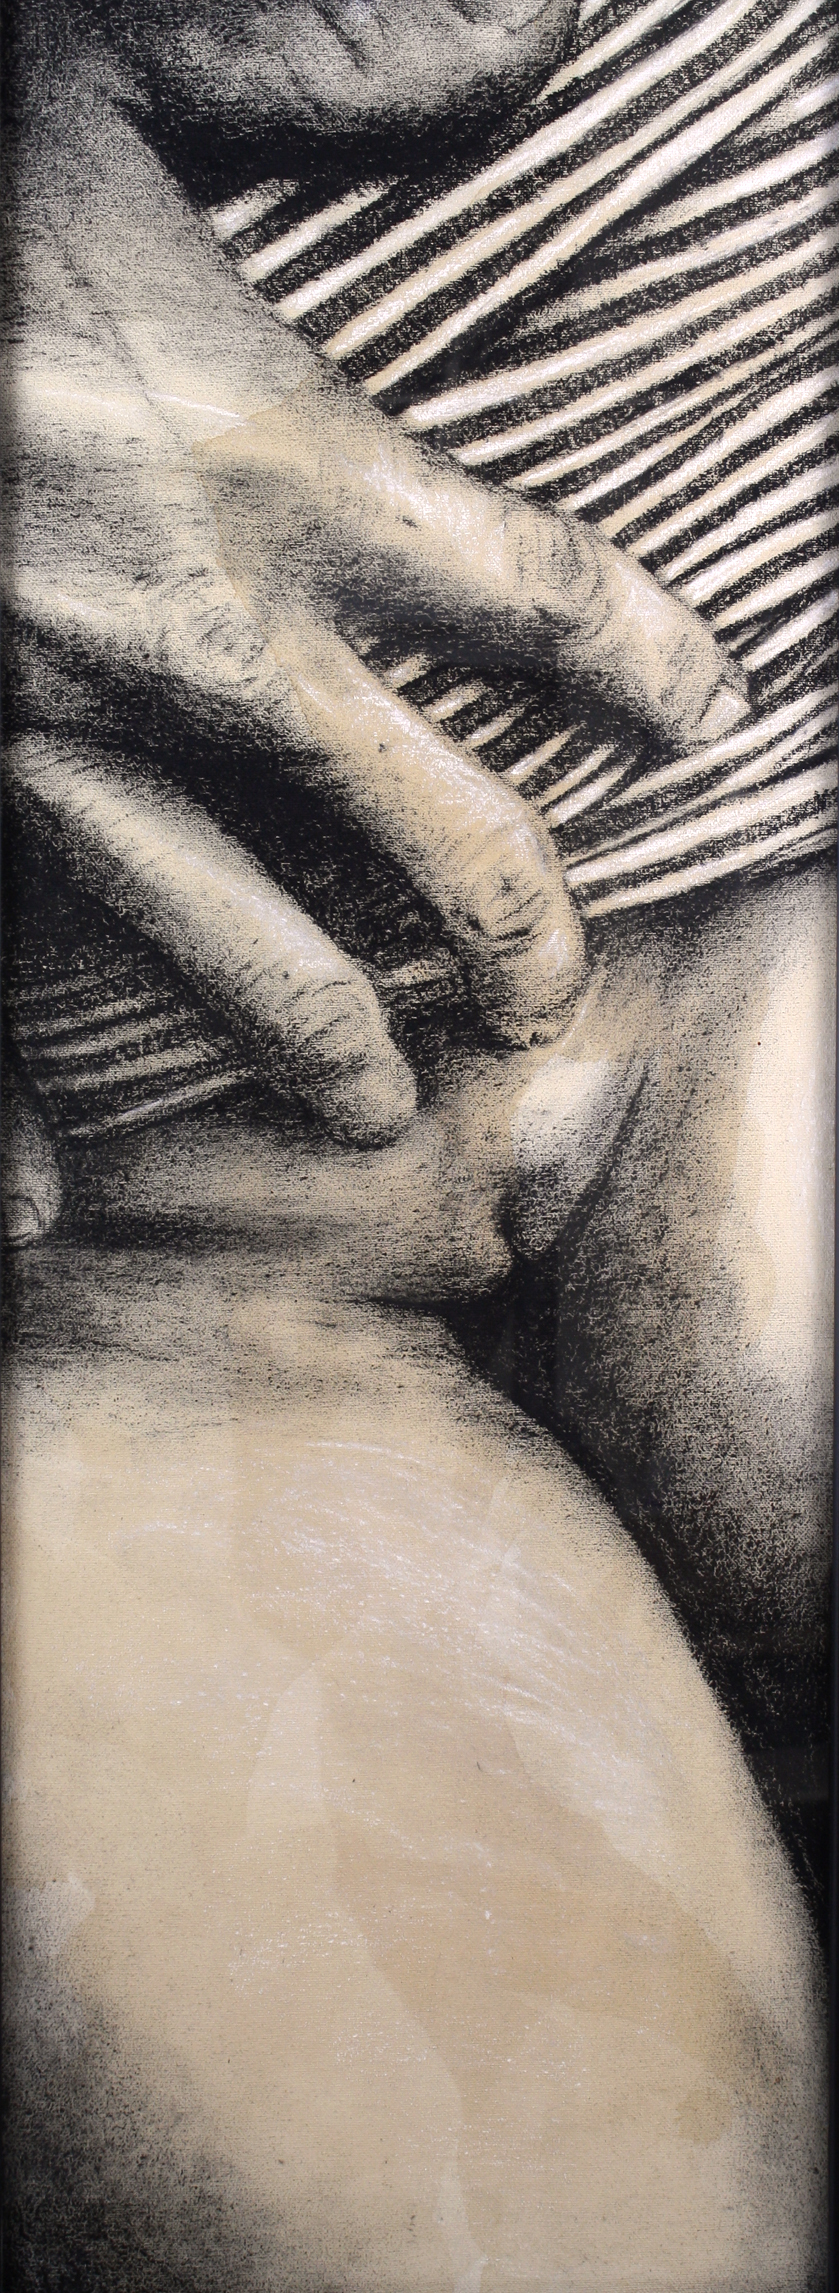 Sexting IMG.201403.004  Charcoal & Tea on Canvas ©2016 The Femme Project